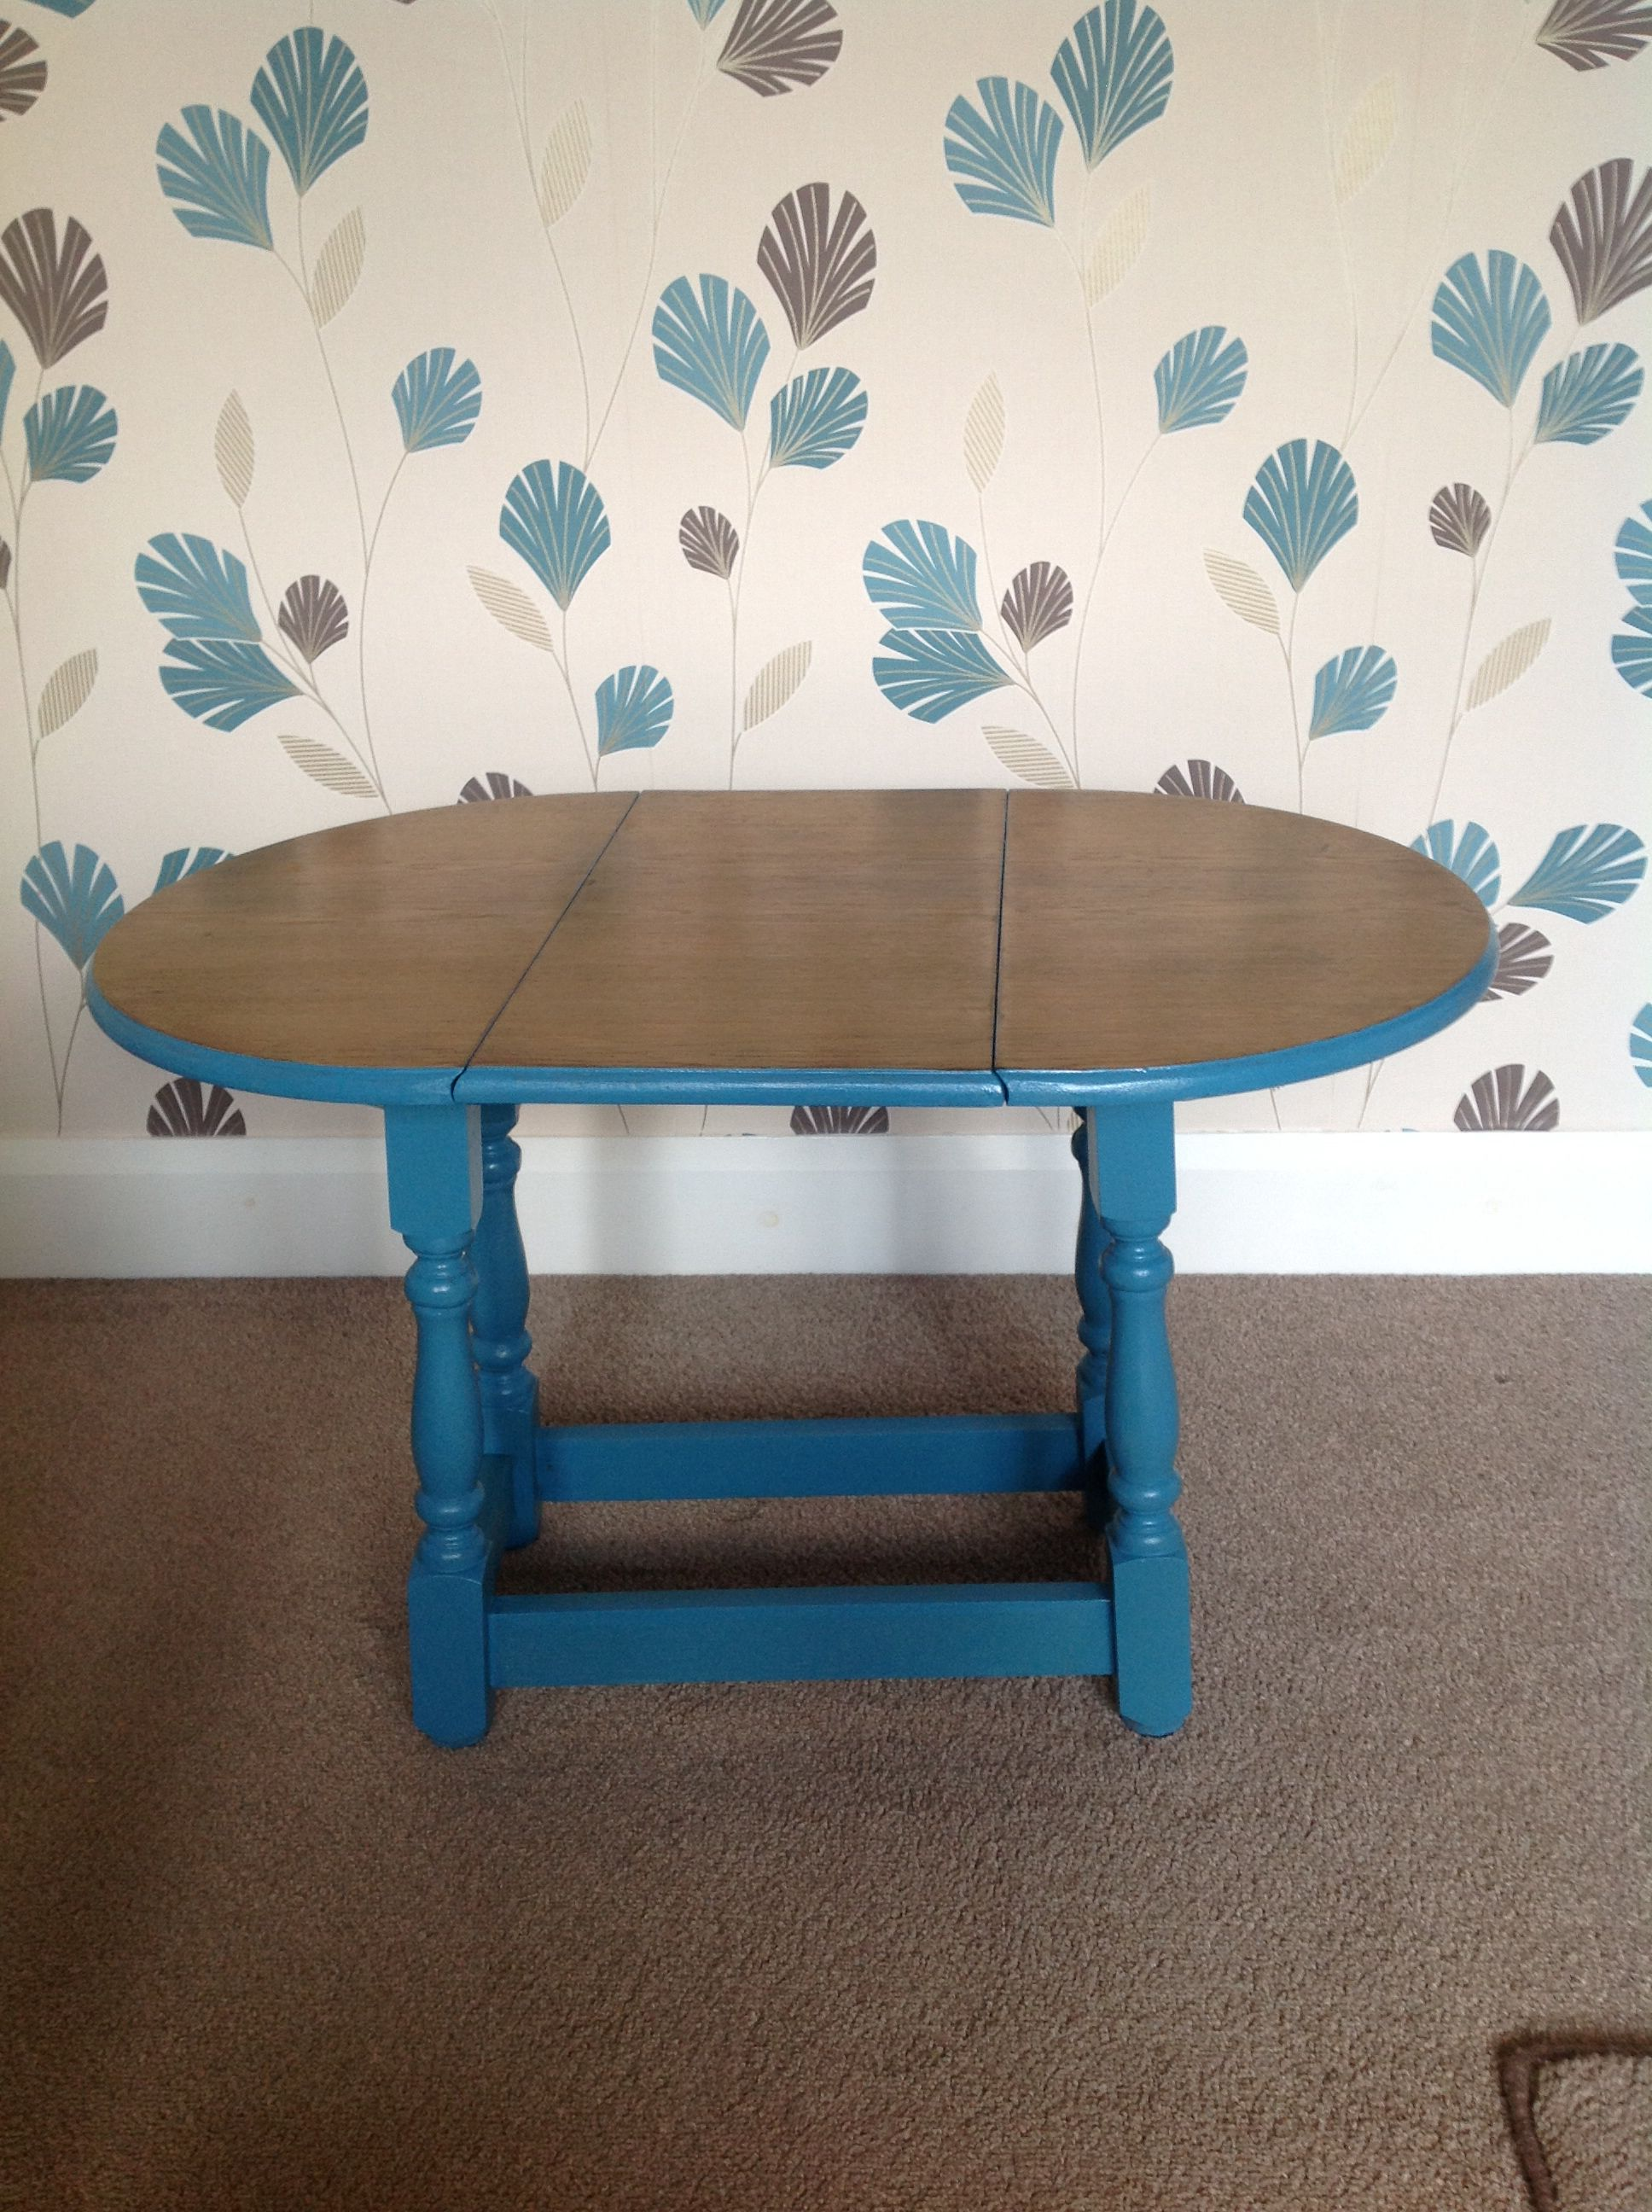 Upcycled coffee table x Coffee table, Decor, Table